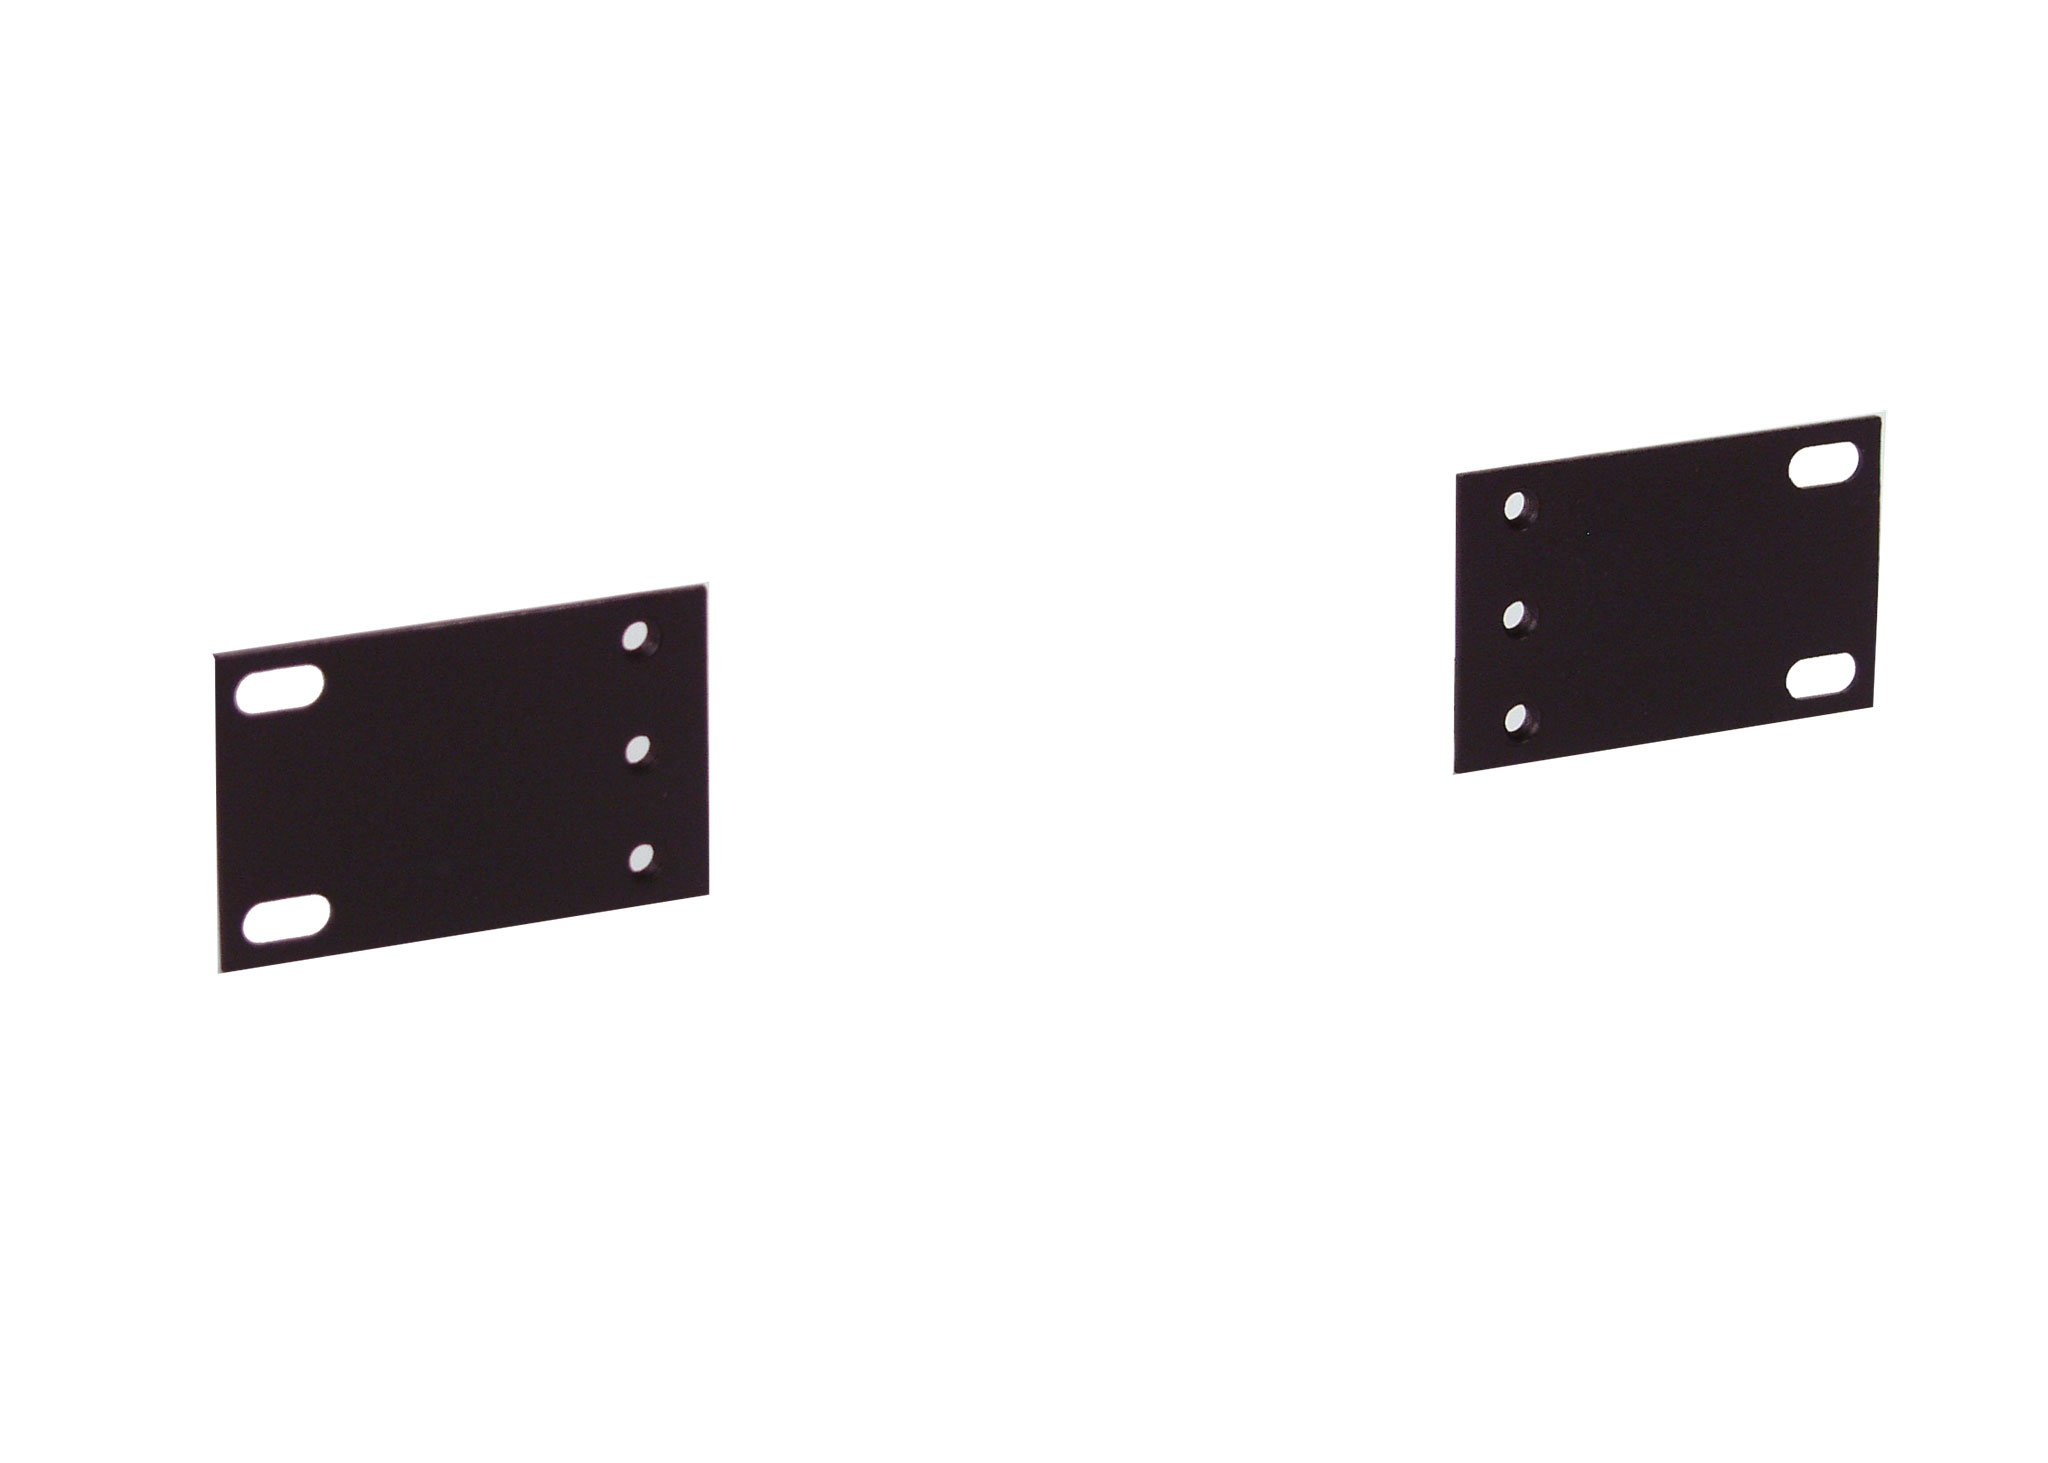 RCB1060-1U Rackmount 1U 23 inch to 19 inch Rack Reducer adapter for 2 Post or 4 Post Cabinet (1 pair)